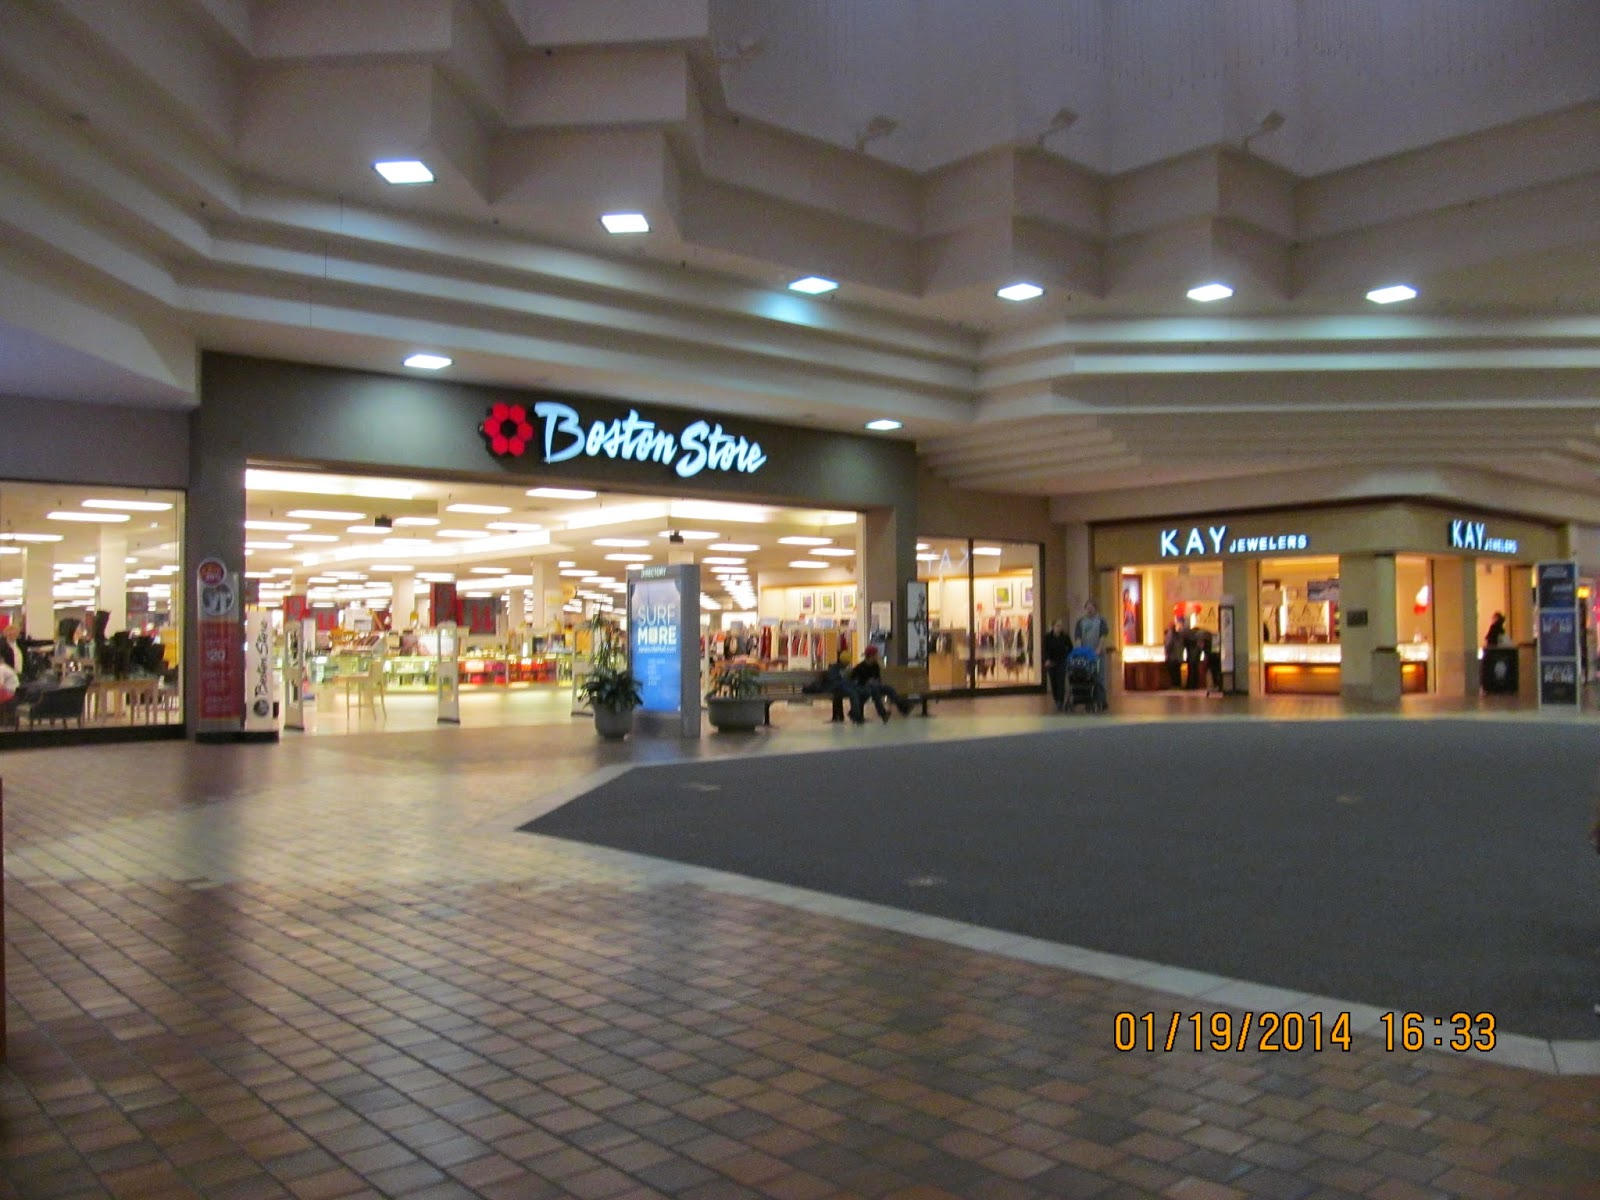 9e1ede969 If anyone has any questions about the mall, feel free to post below.